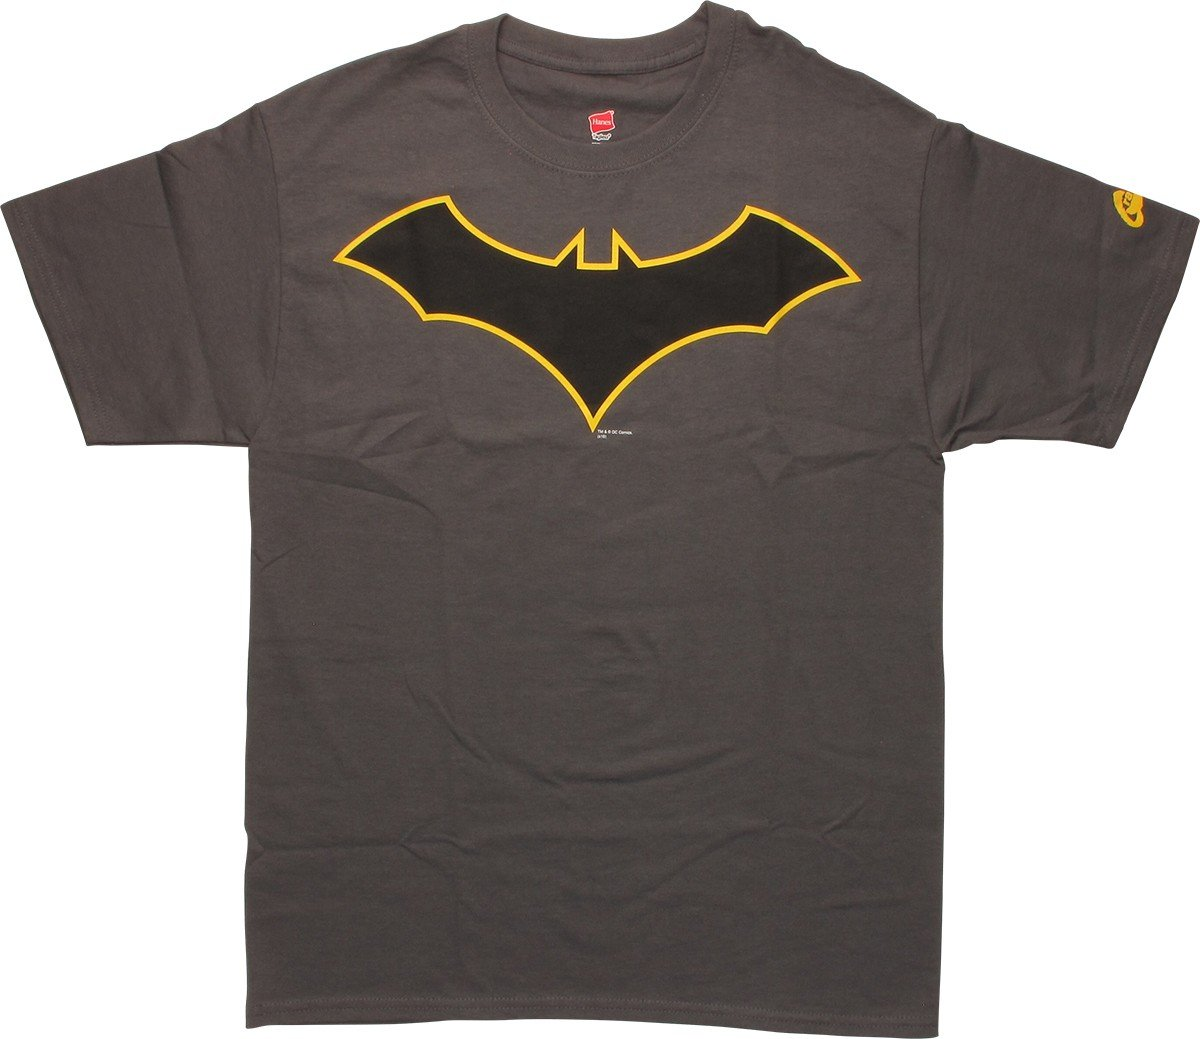 Stylinonline New Batman Rebirth Logo Tee Get Yours Today